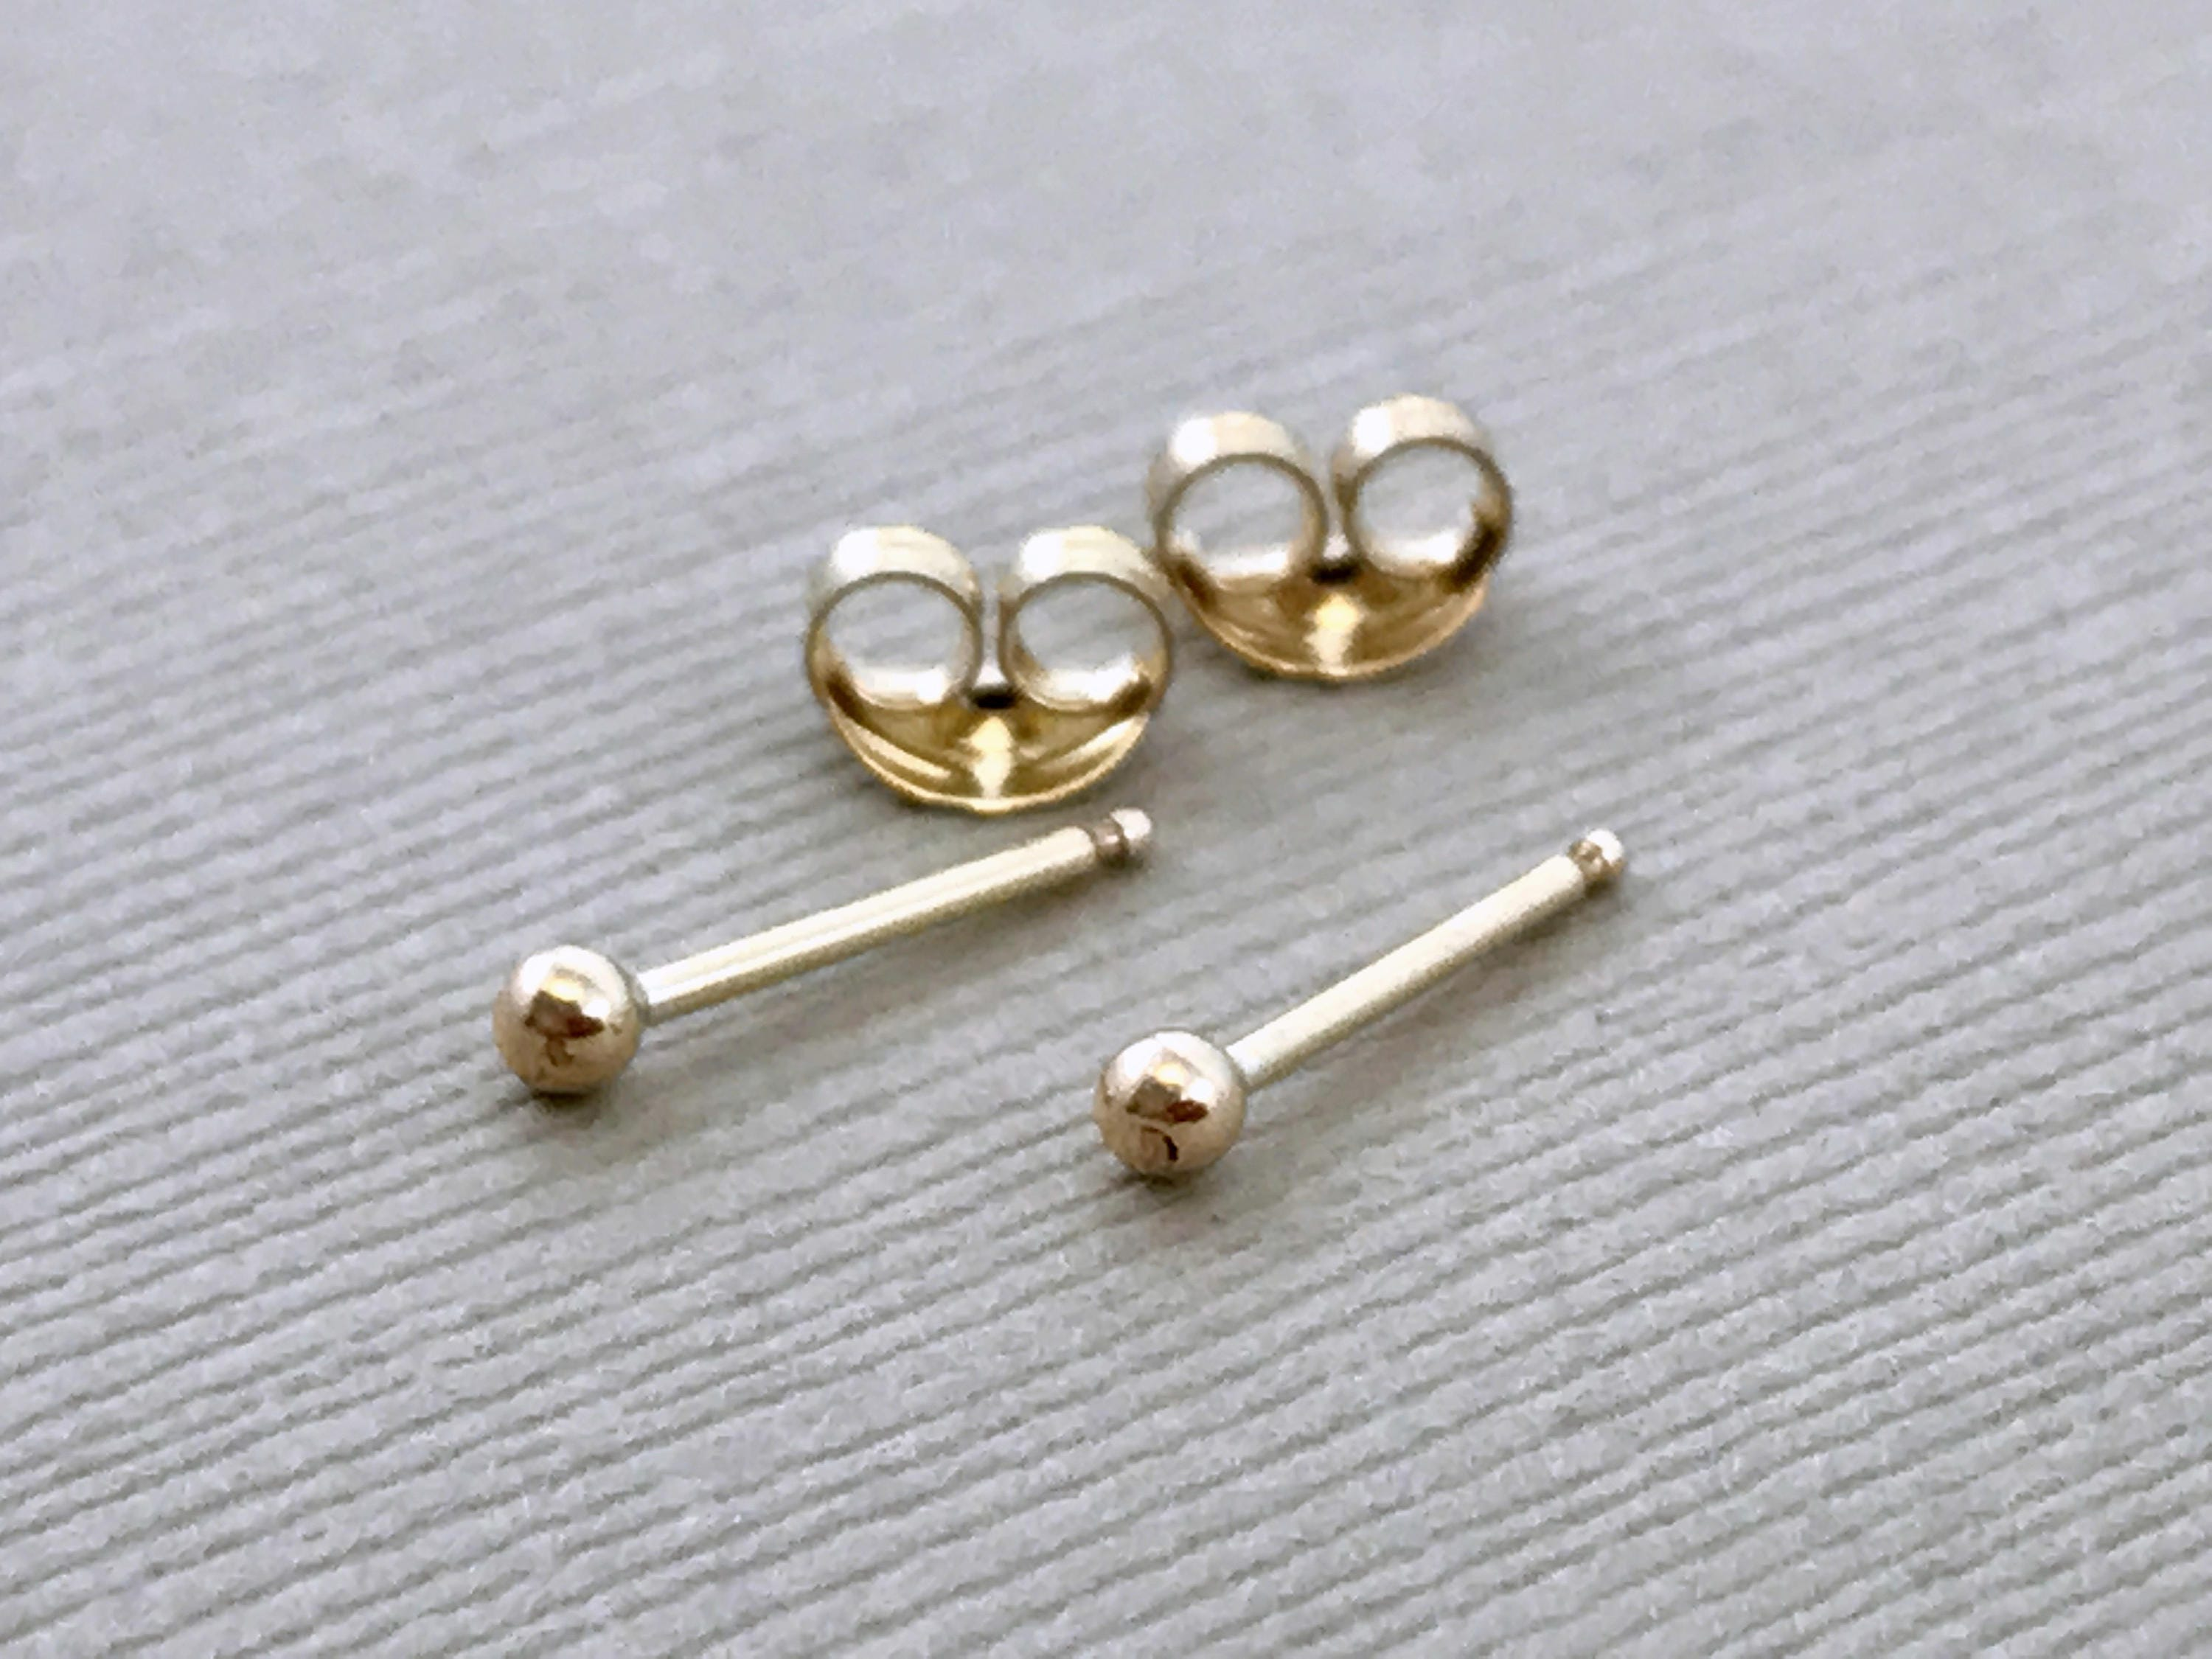 earrings women pure design gold for office watch simple wear ideas daily